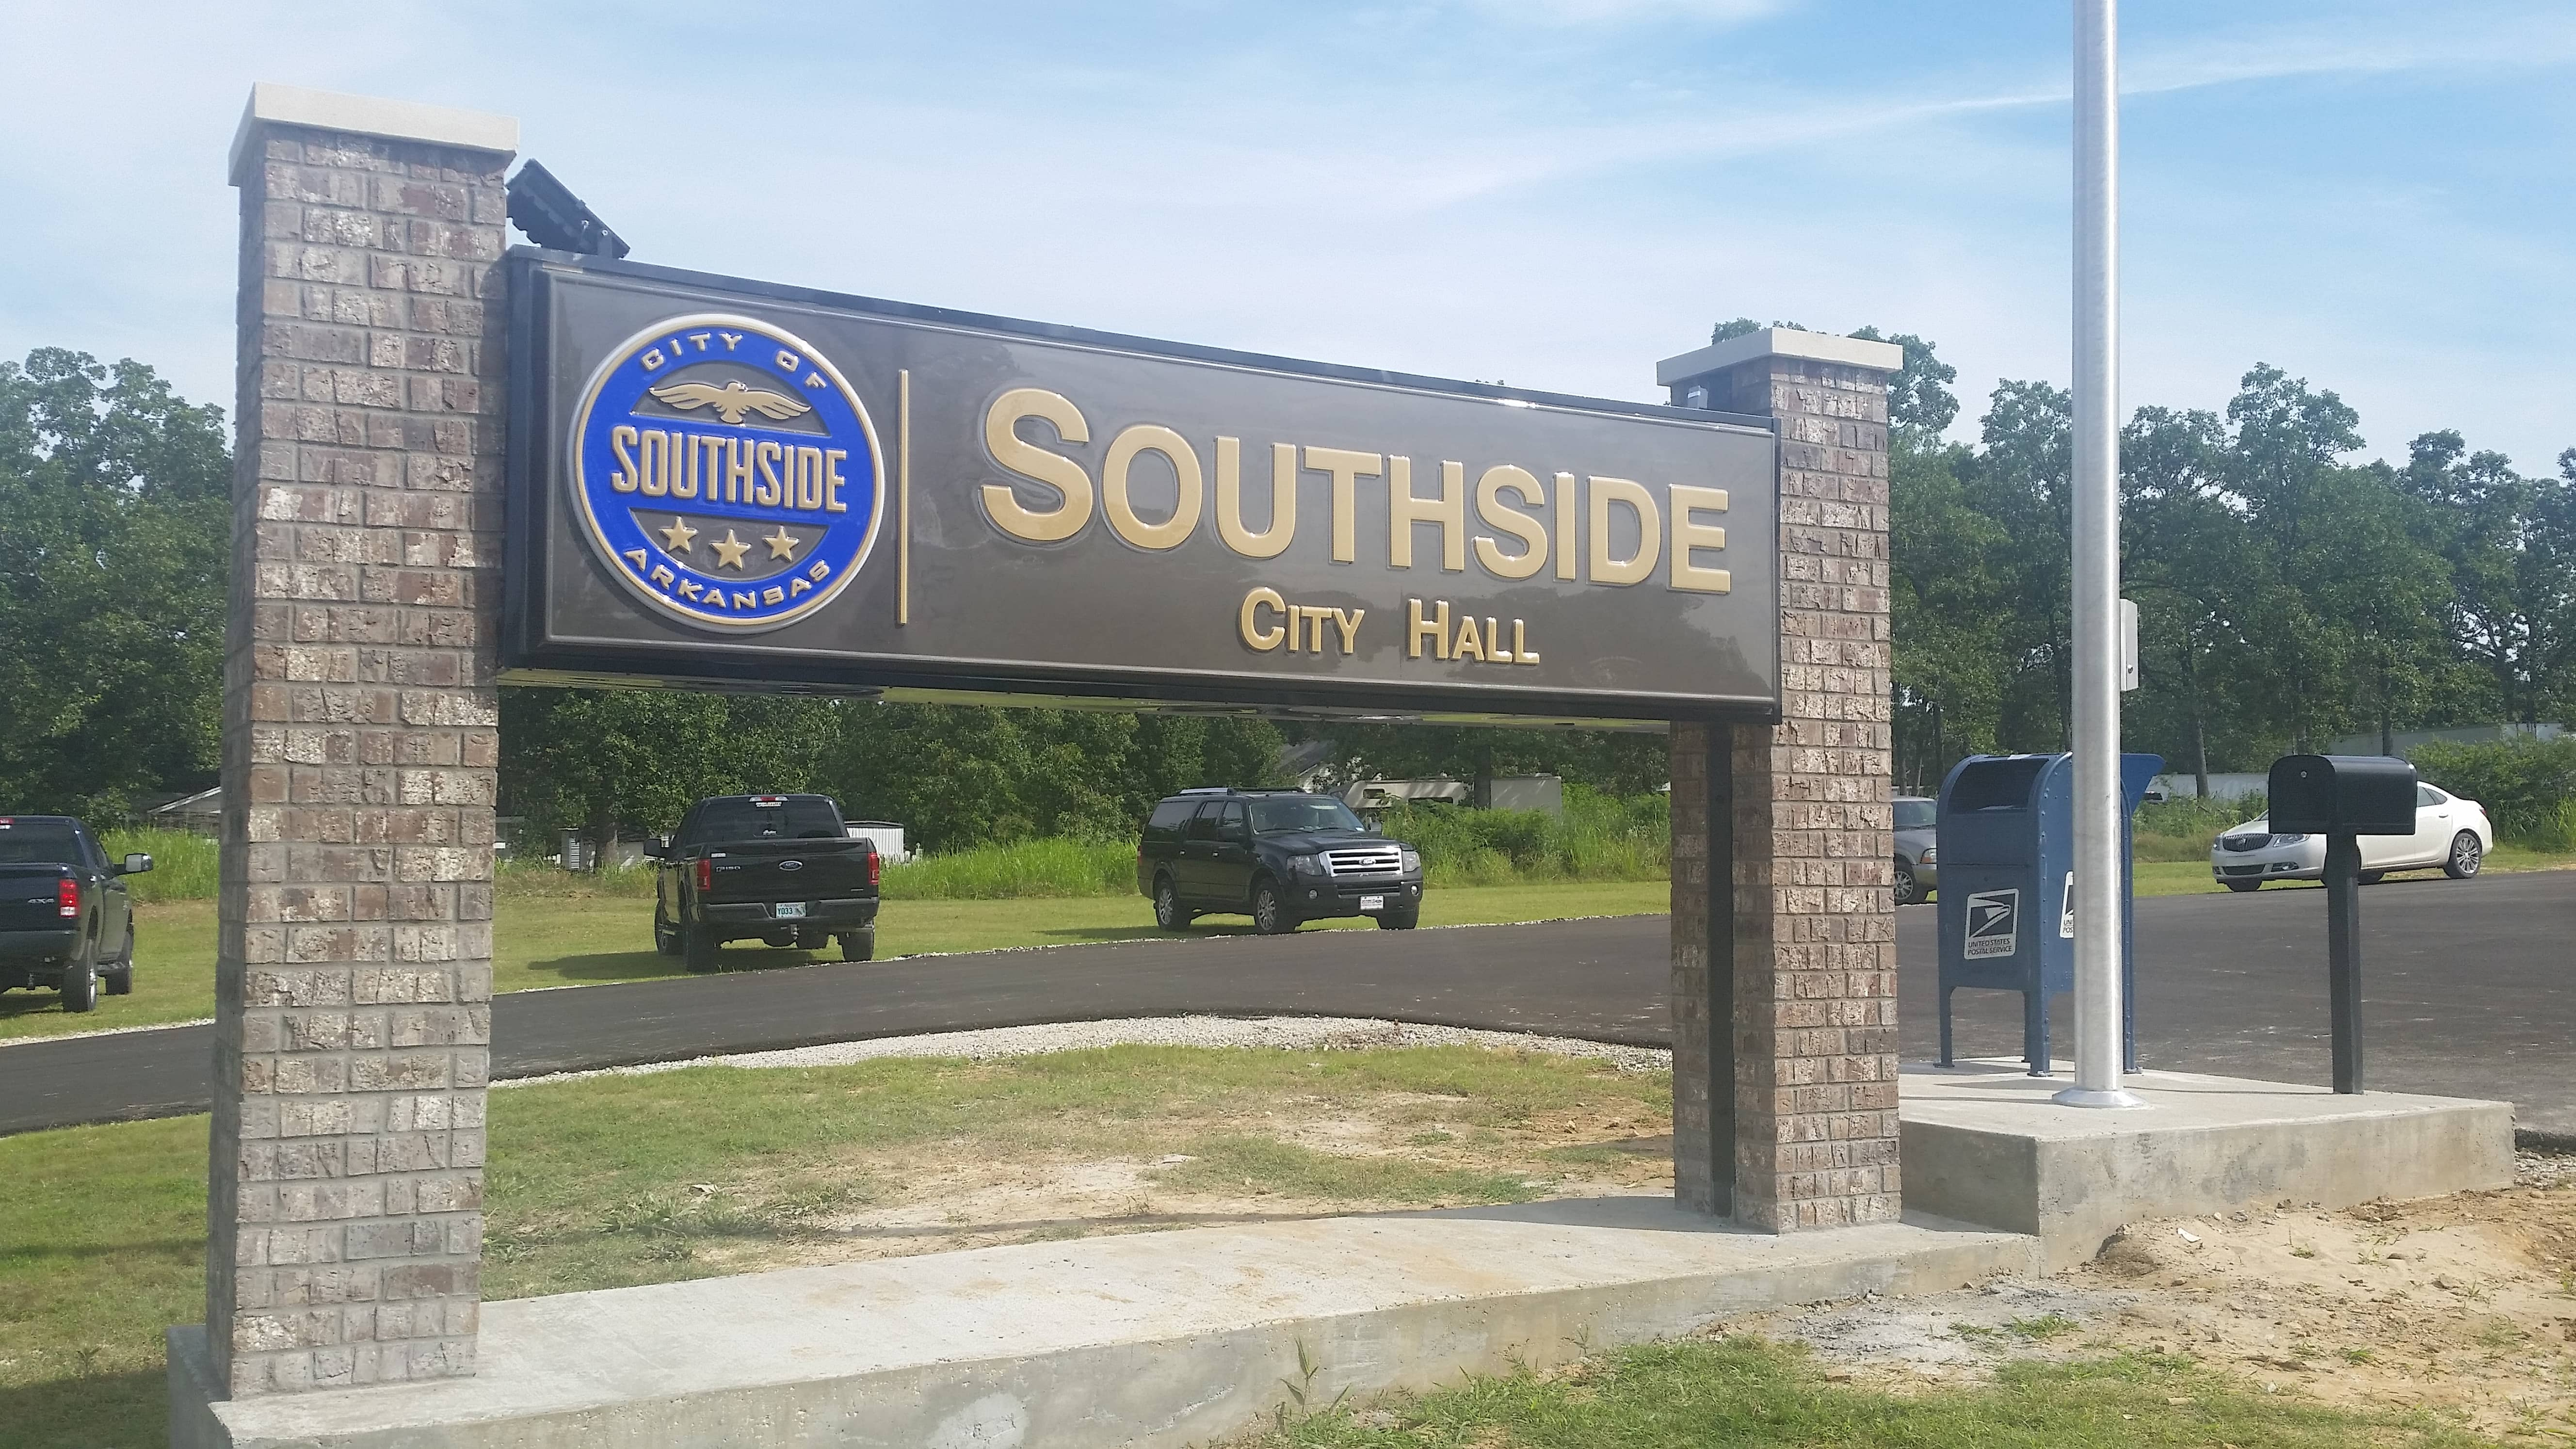 Southside City Hall sign